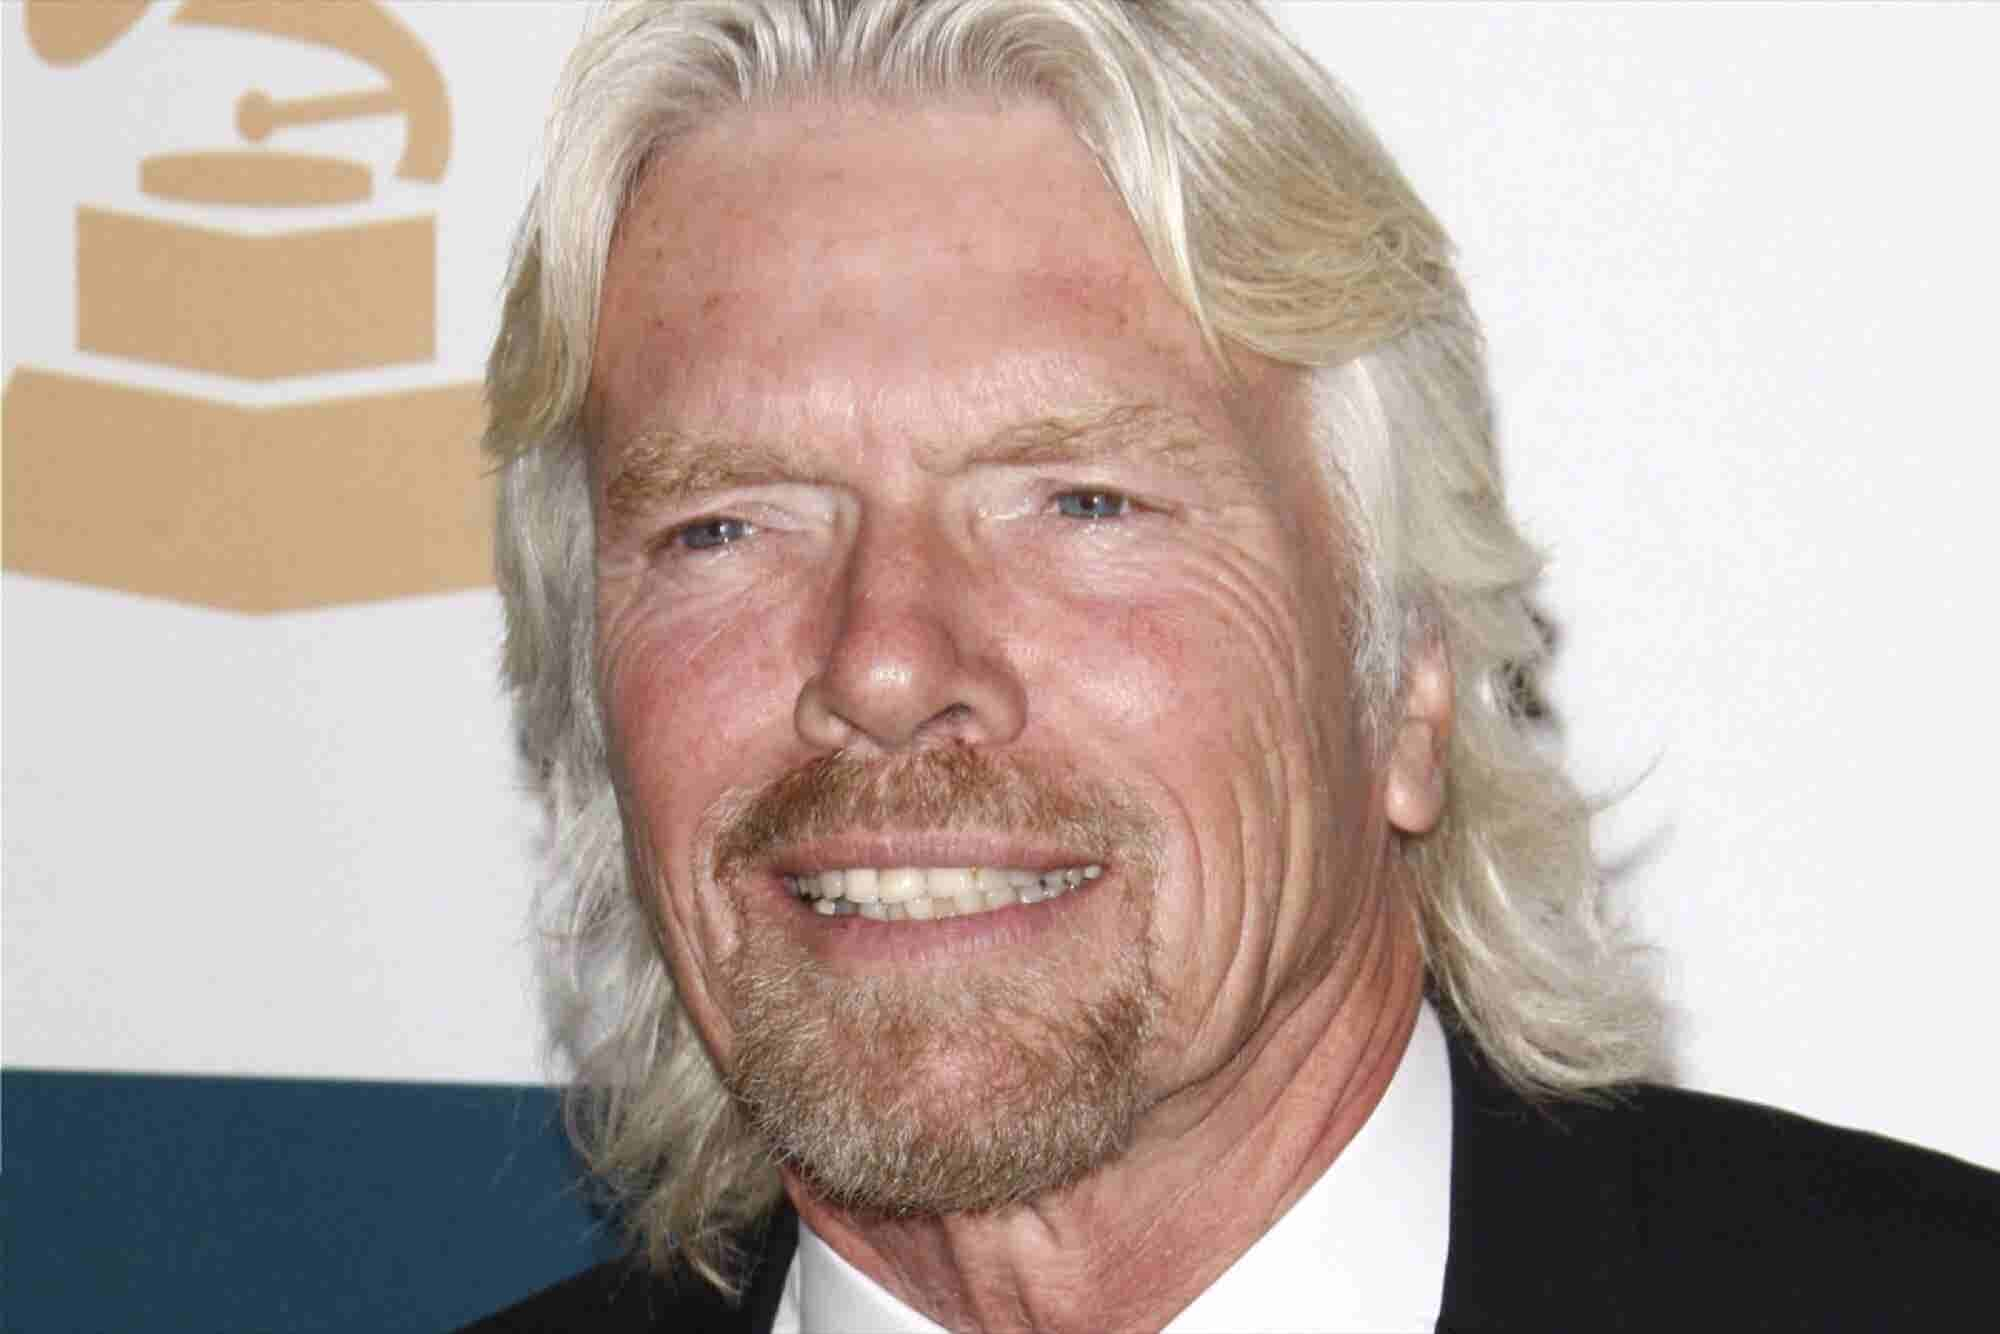 Branson Says Virgin Group Loses Third of Its Value After Brexit